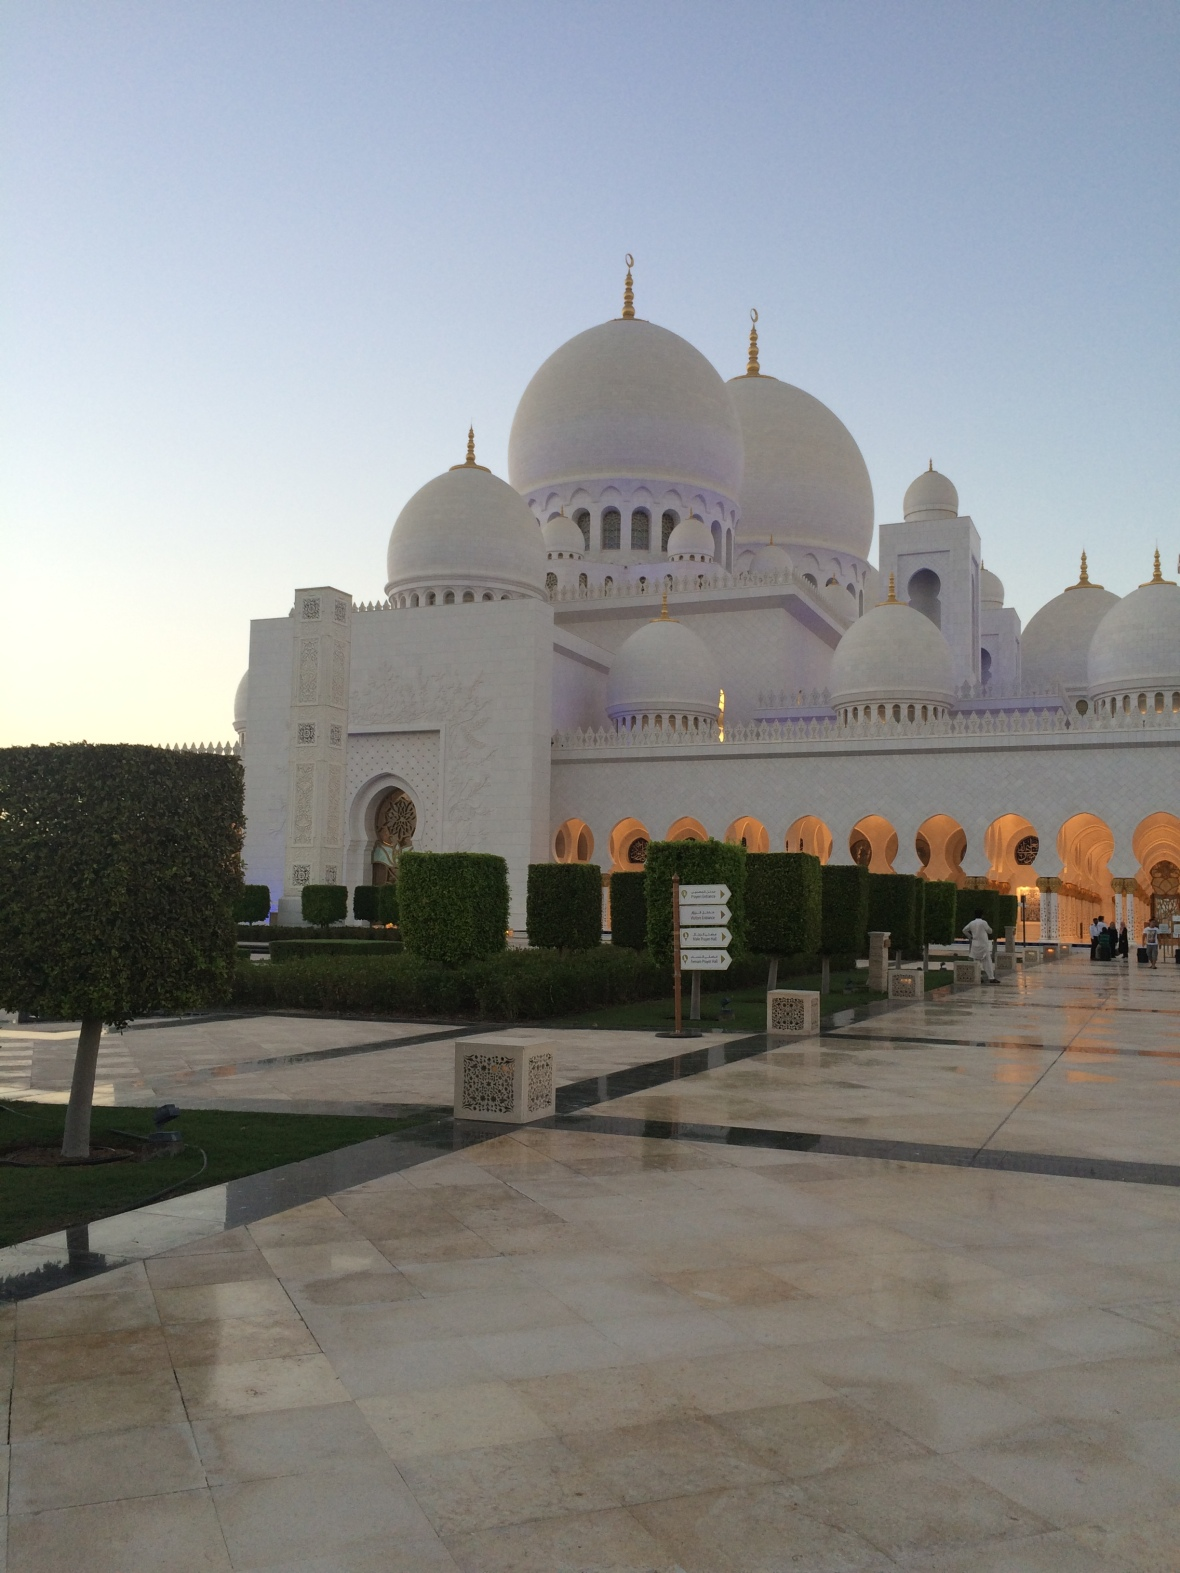 Side View, Sheikh Zayed Grand Mosque, Abu Dhabi, UAE